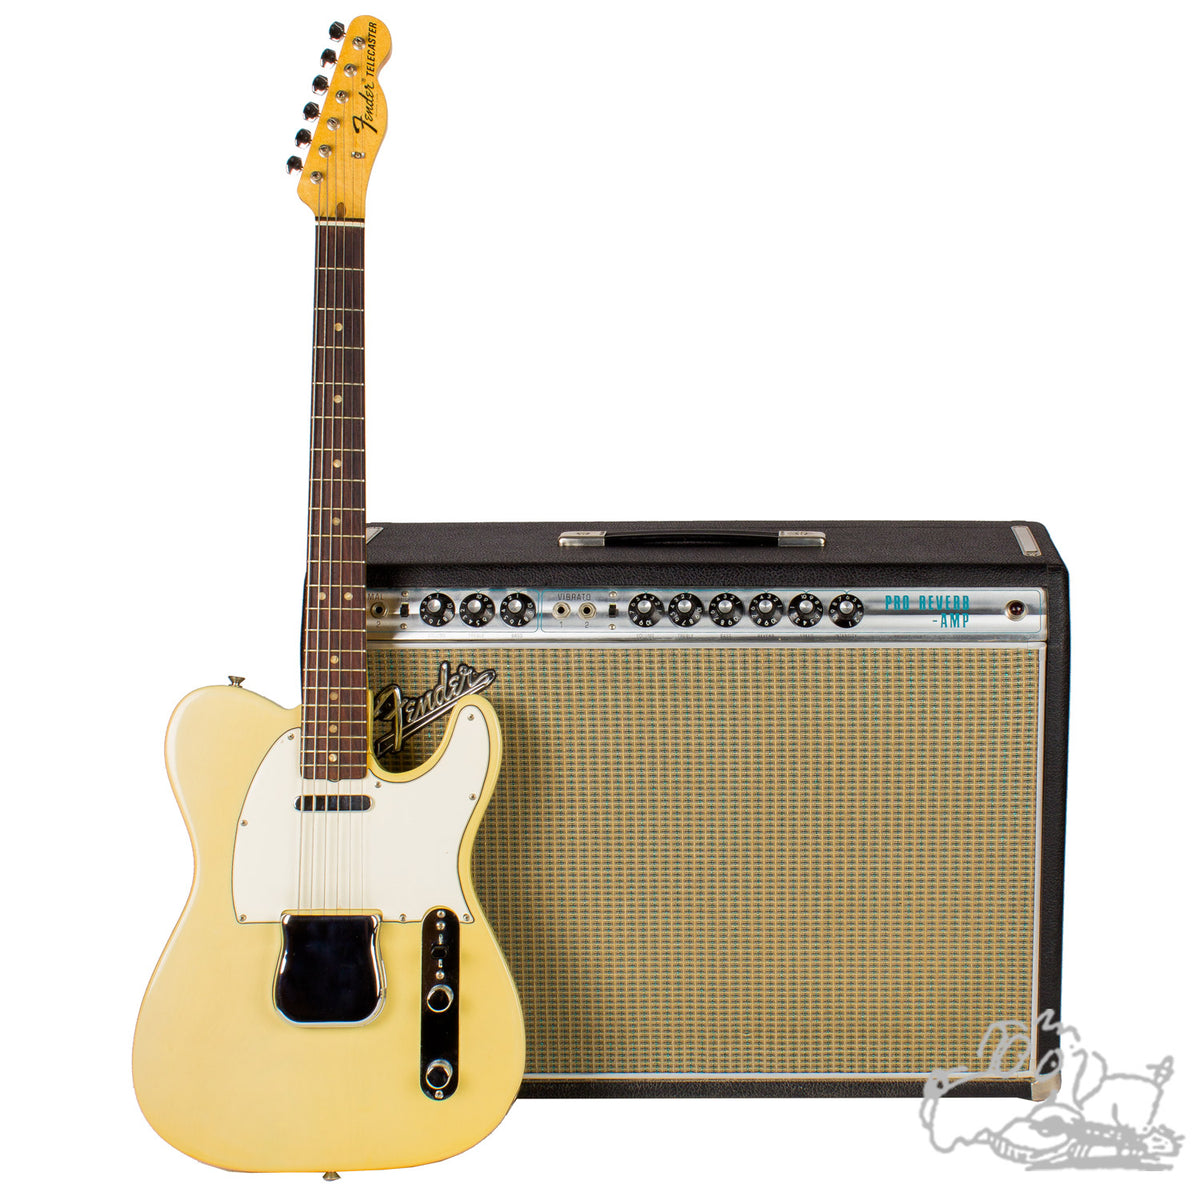 1969 Fender Telecaster And 1968 Fender Pro Reverb